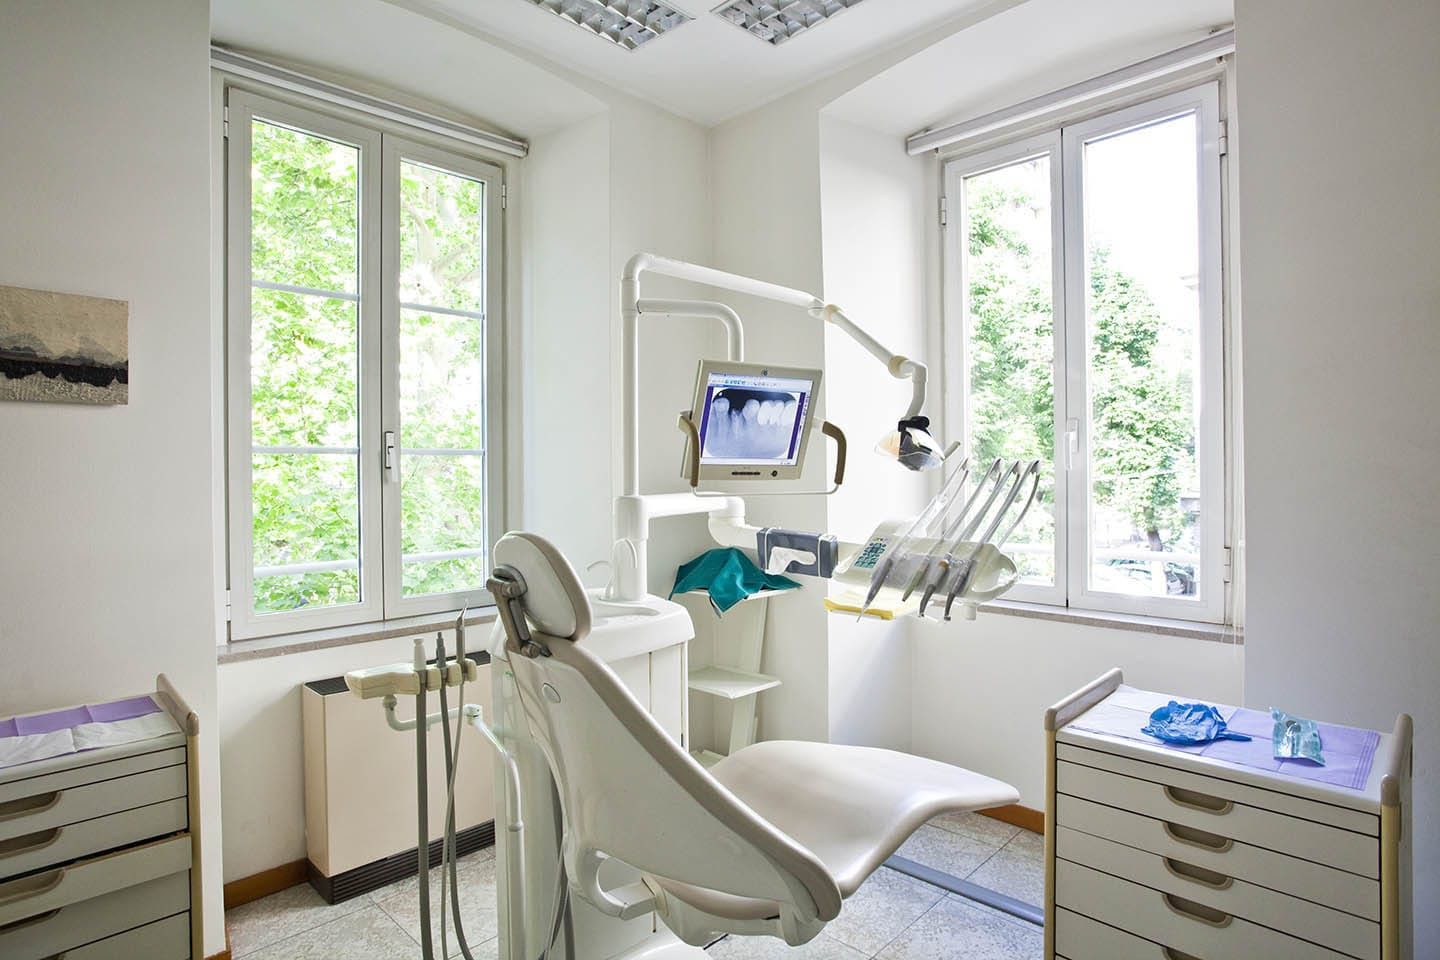 Dentist chair with dental instruments